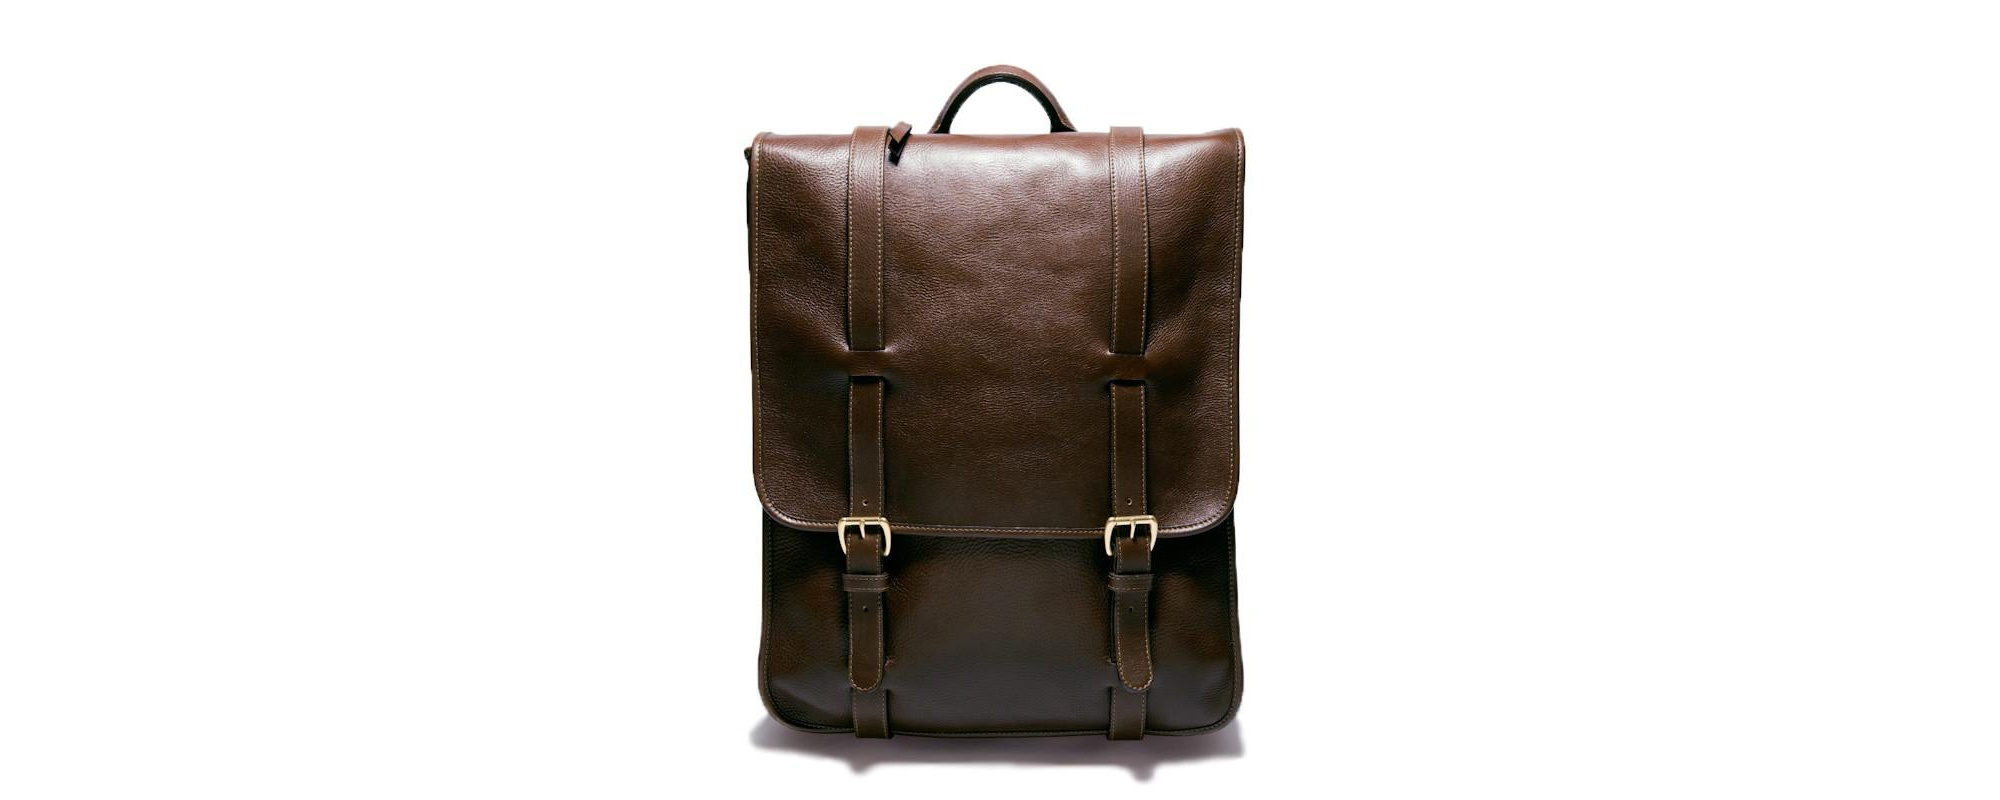 Lotuff Leather backpack in chocolate